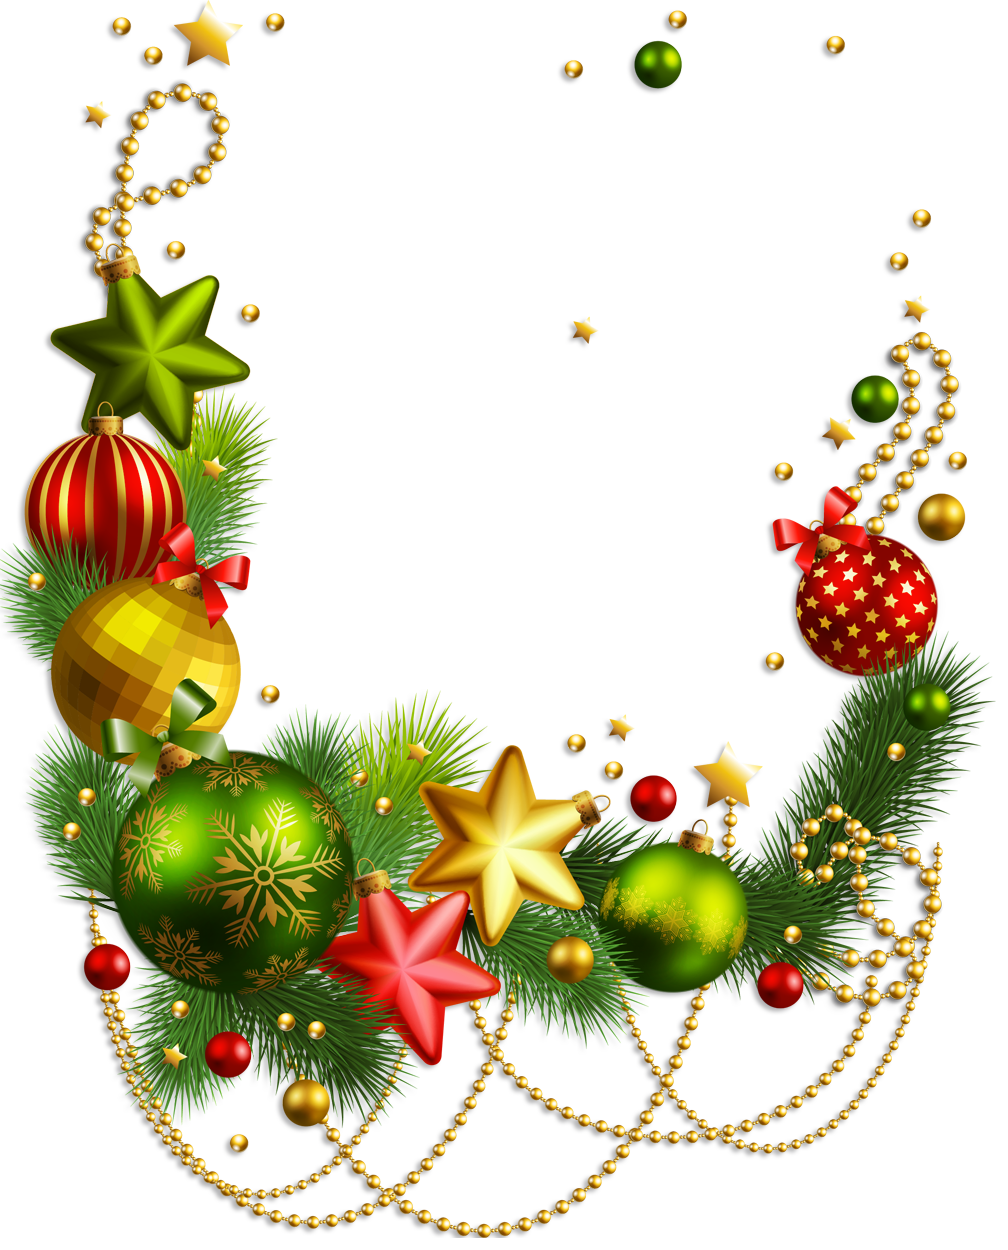 picture transparent Xmas free clip art. Christmas decorations clipart borders.